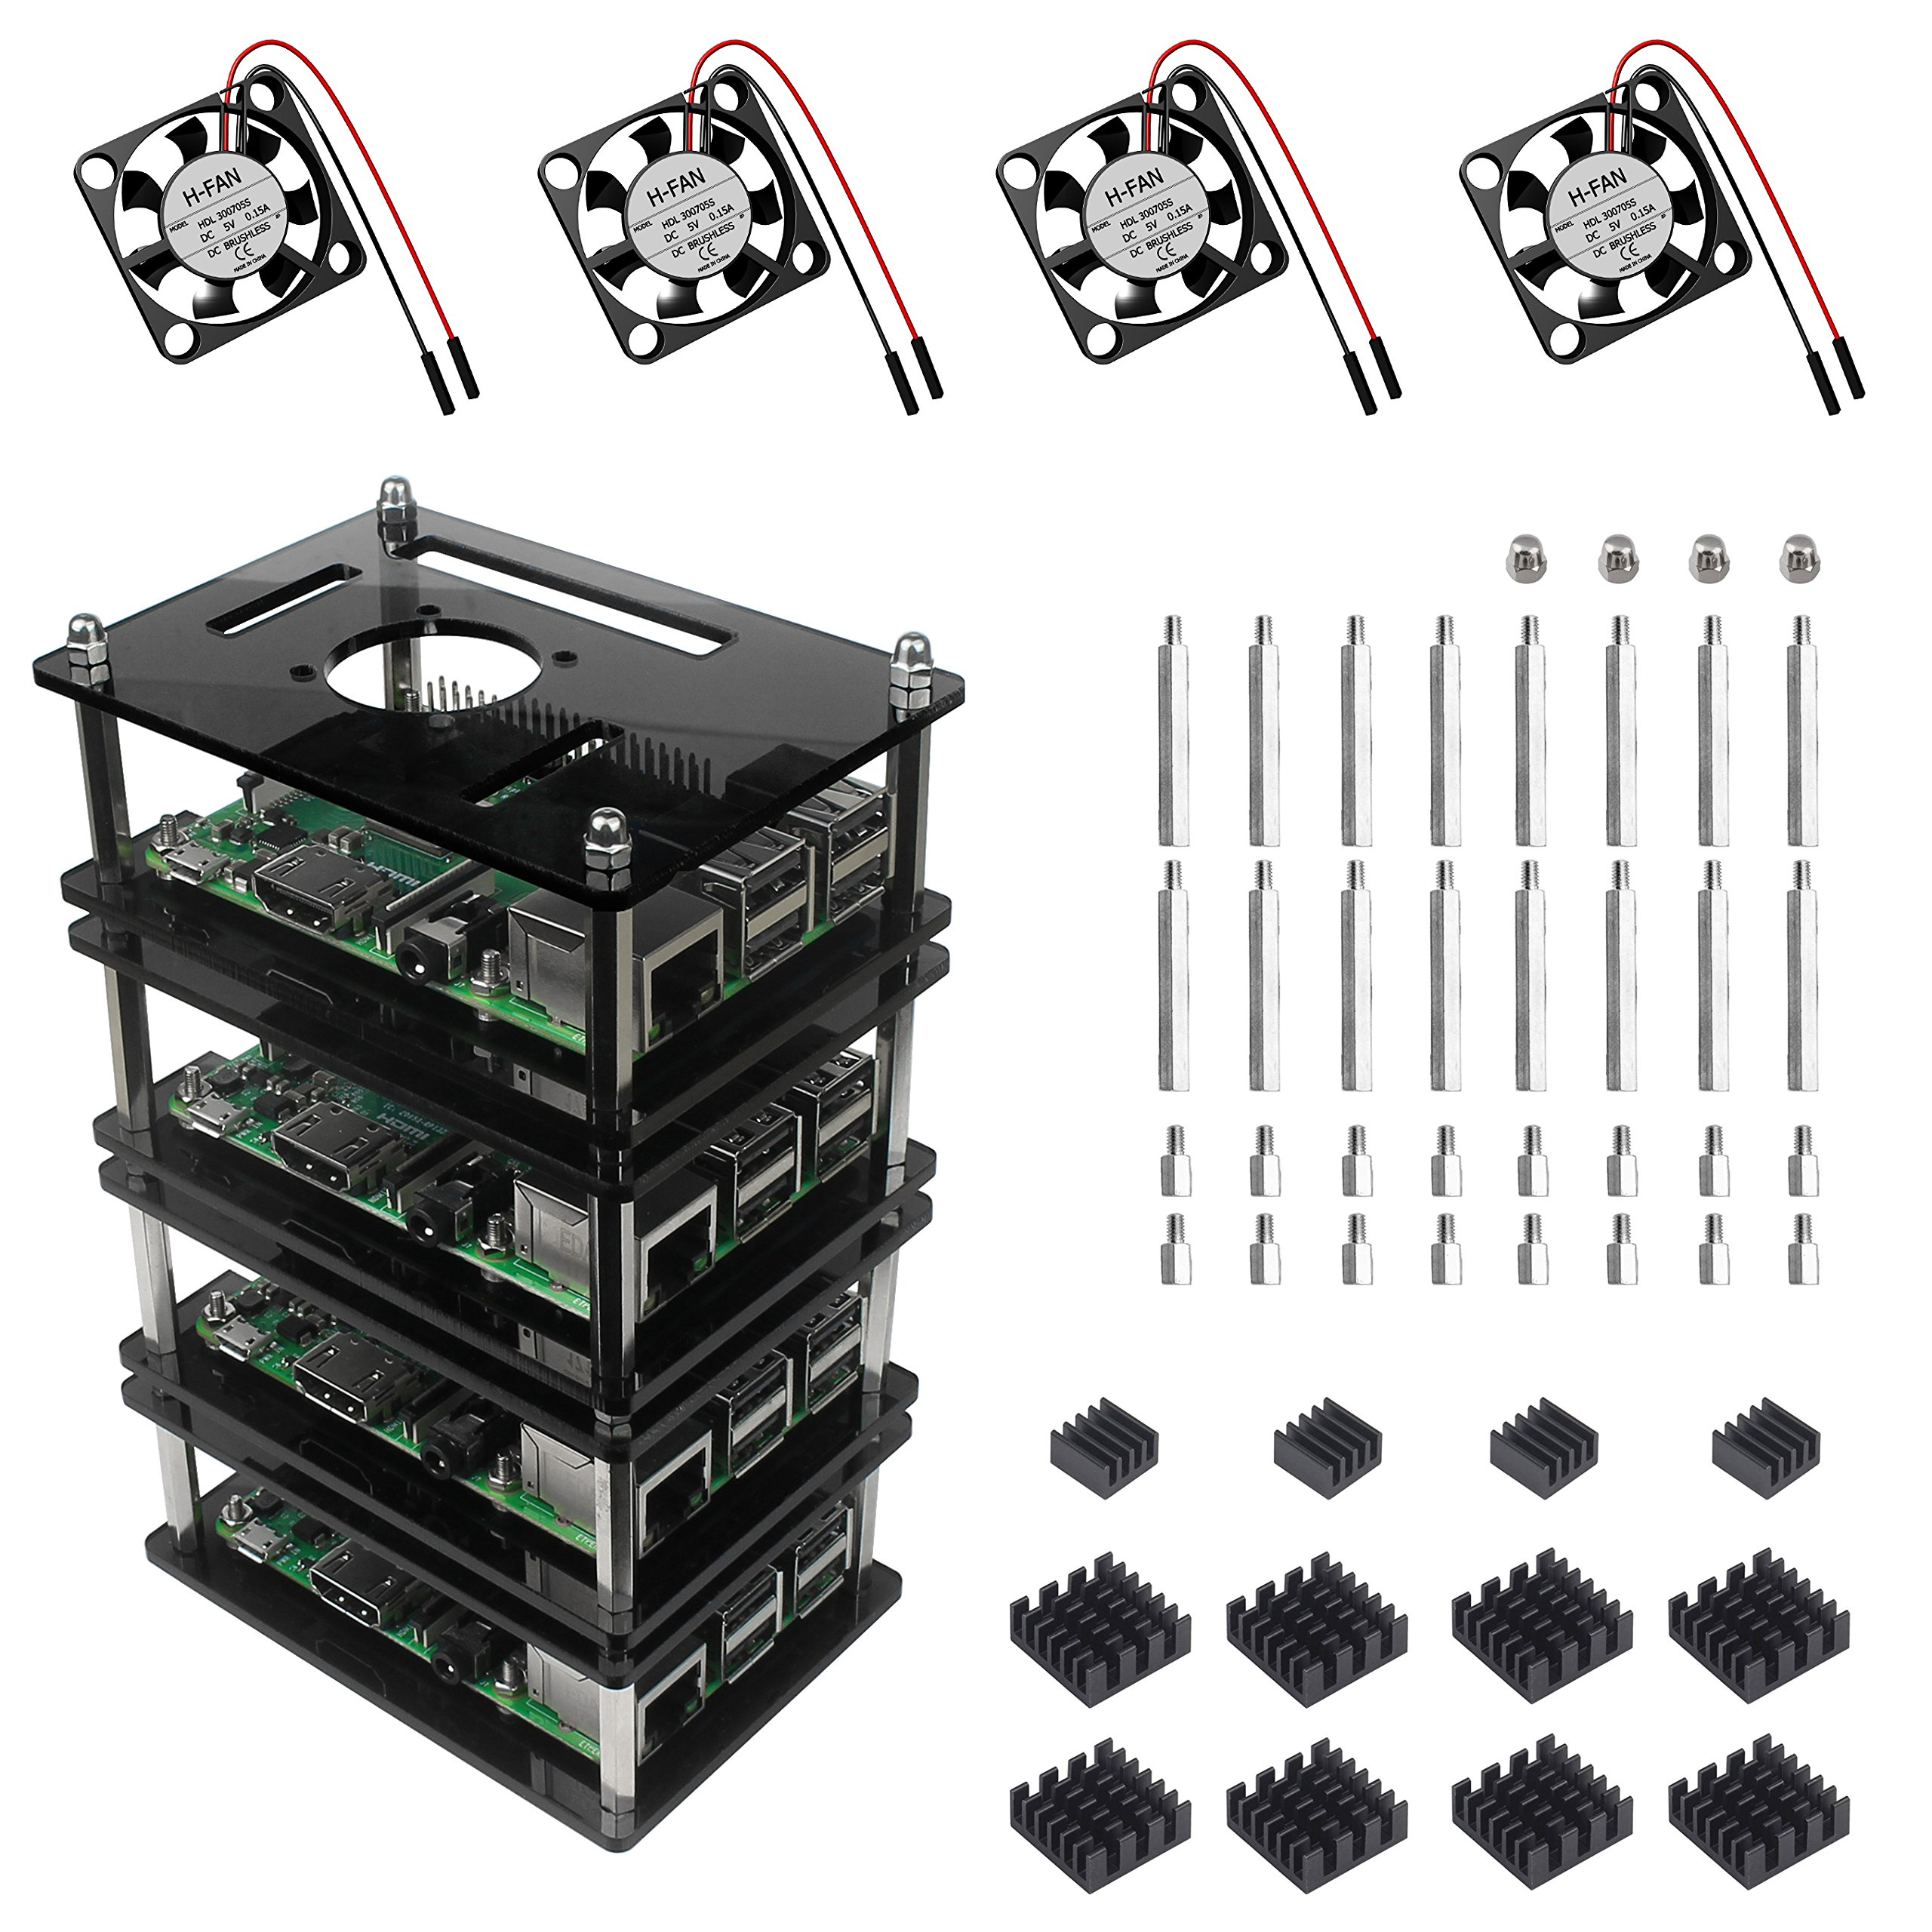 For raspberry pi 3 b+ case 4 layers acrylic stackable gray case with fan and heatsink for raspberry pi 3 model b